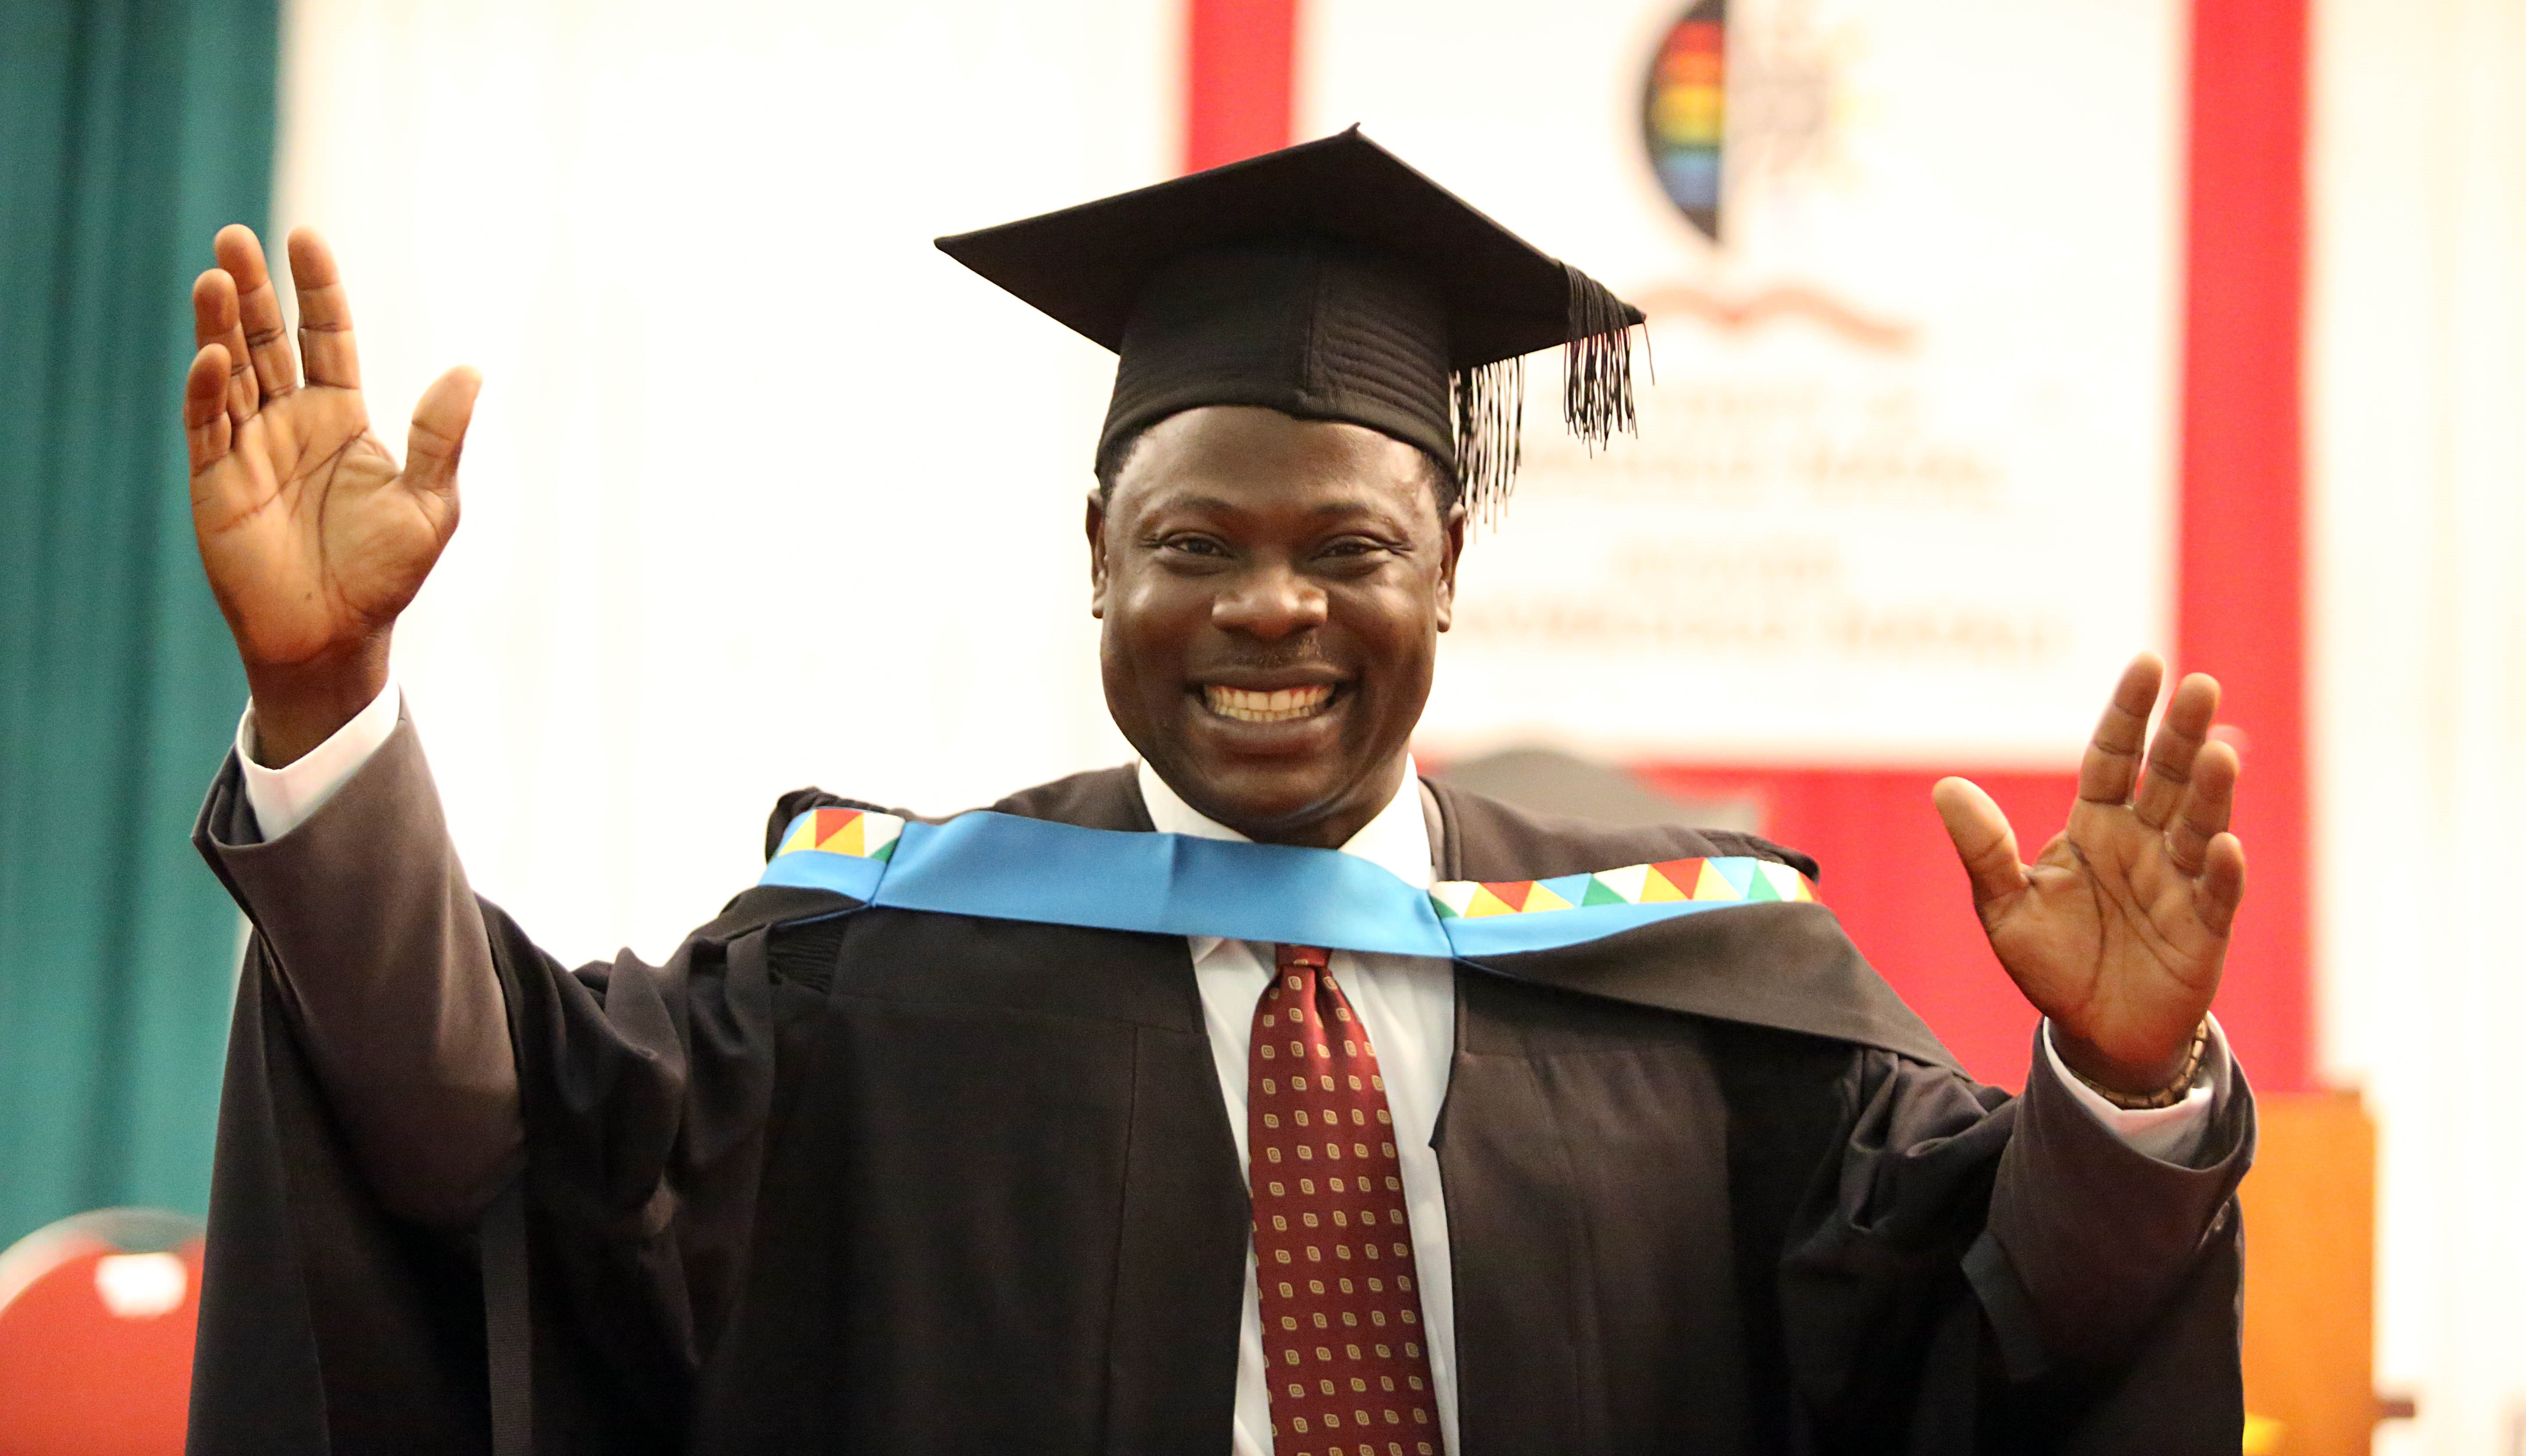 Mr Steve Tai Oladosu graduates with his Masters in Social Sciences cum laude.